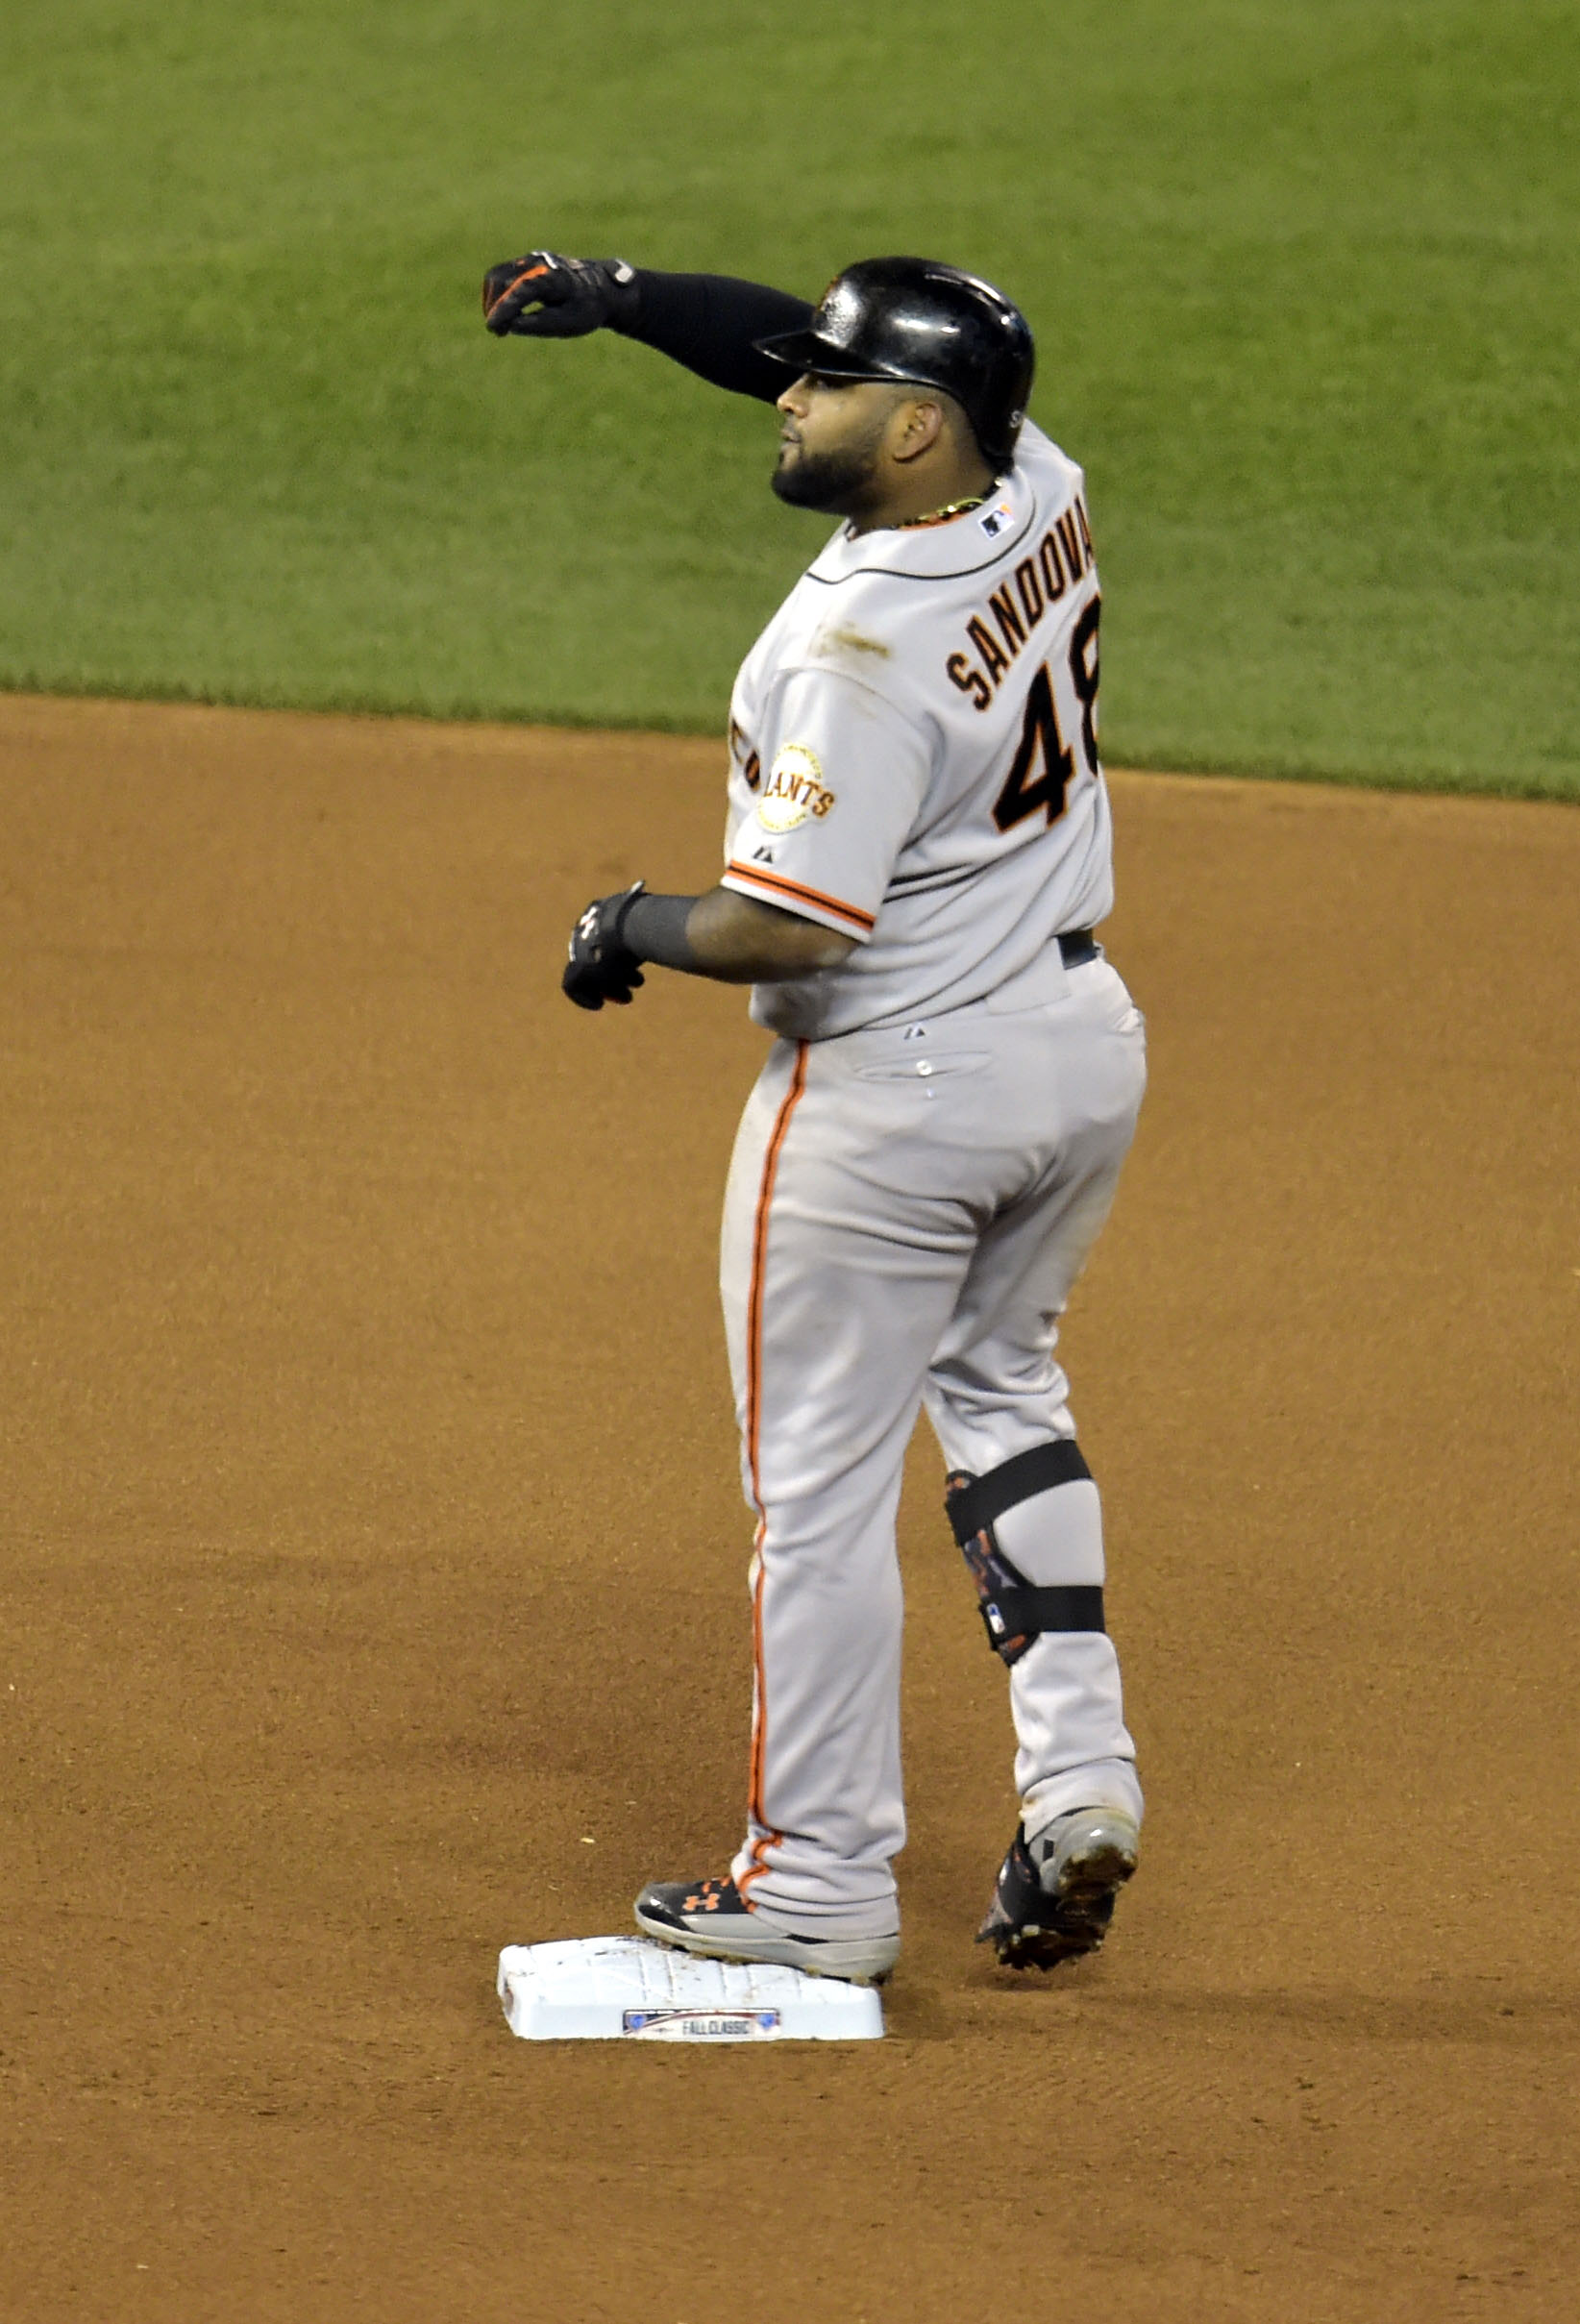 Pablo Sandoval force punches his former teammates as he departs for Boston.